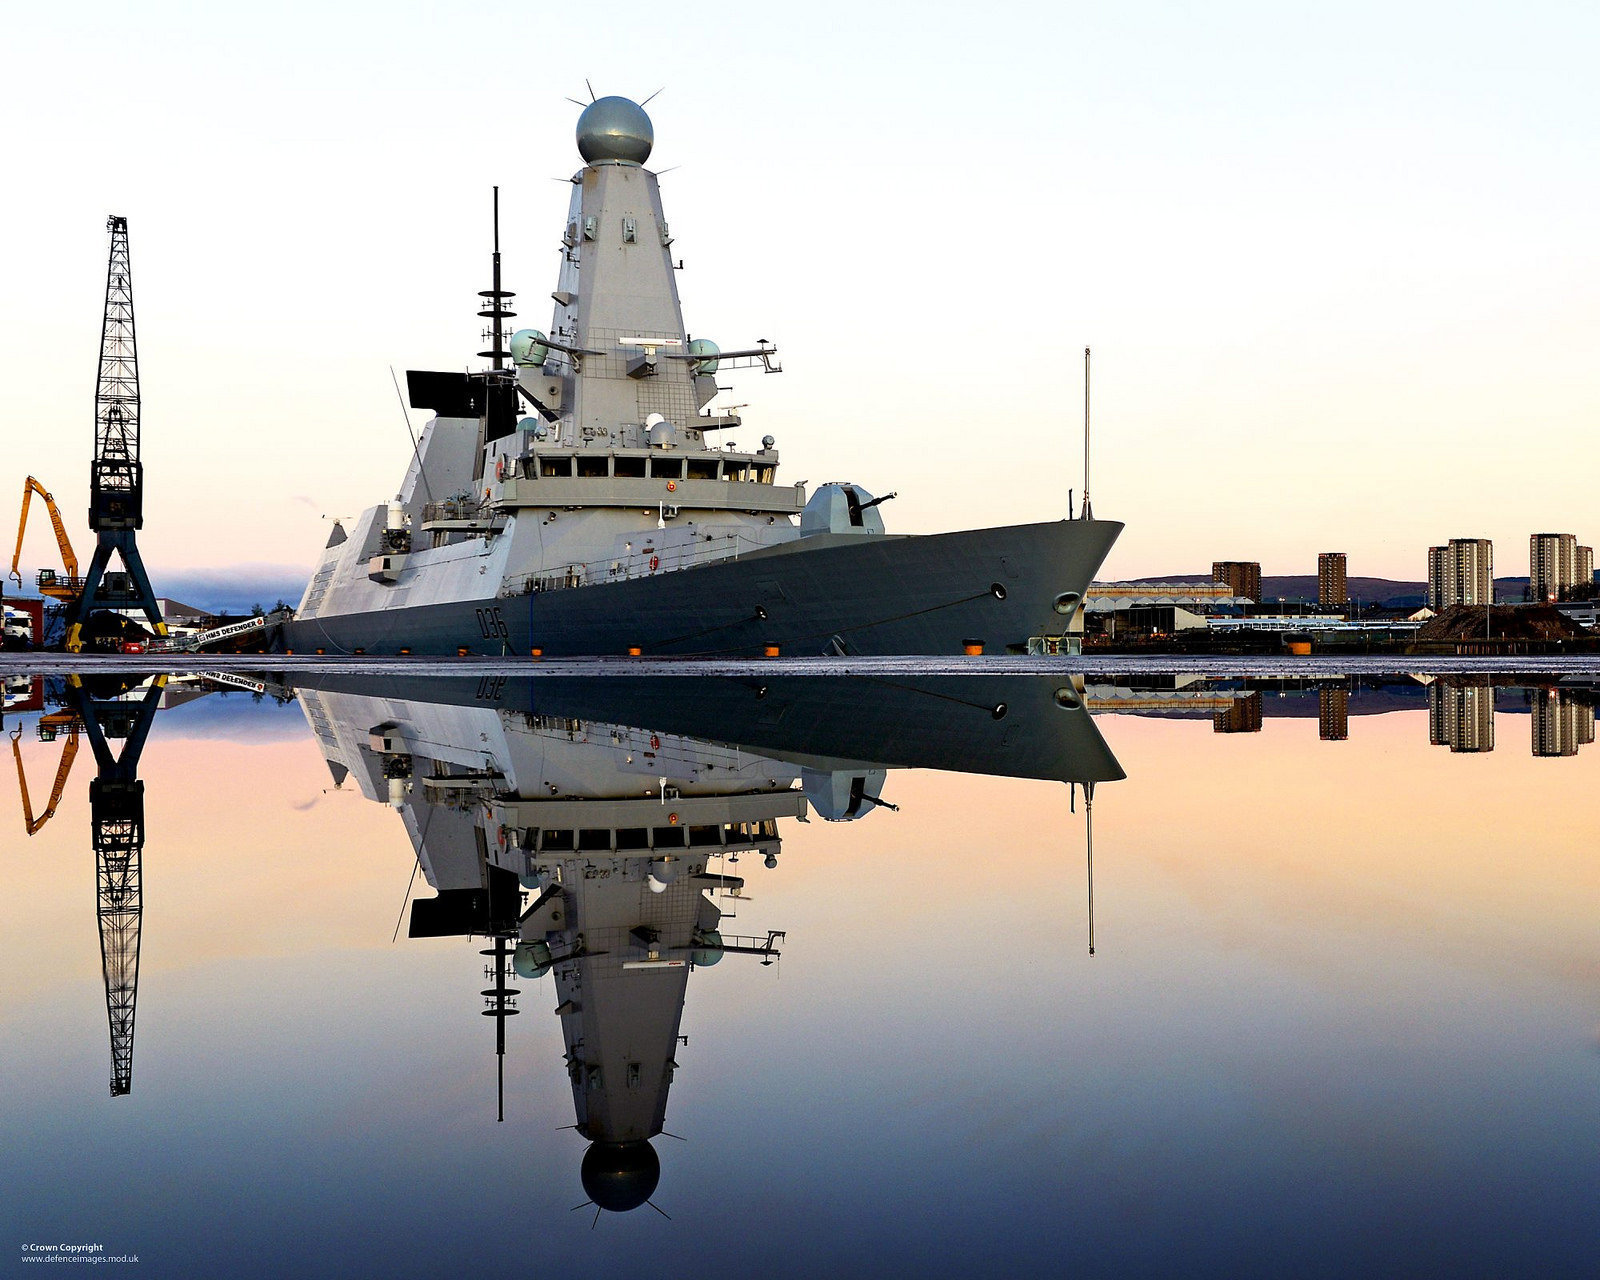 Royal Navy Type 45 destroyer HMS Defender is mirrored in water following a downpour on the dockside